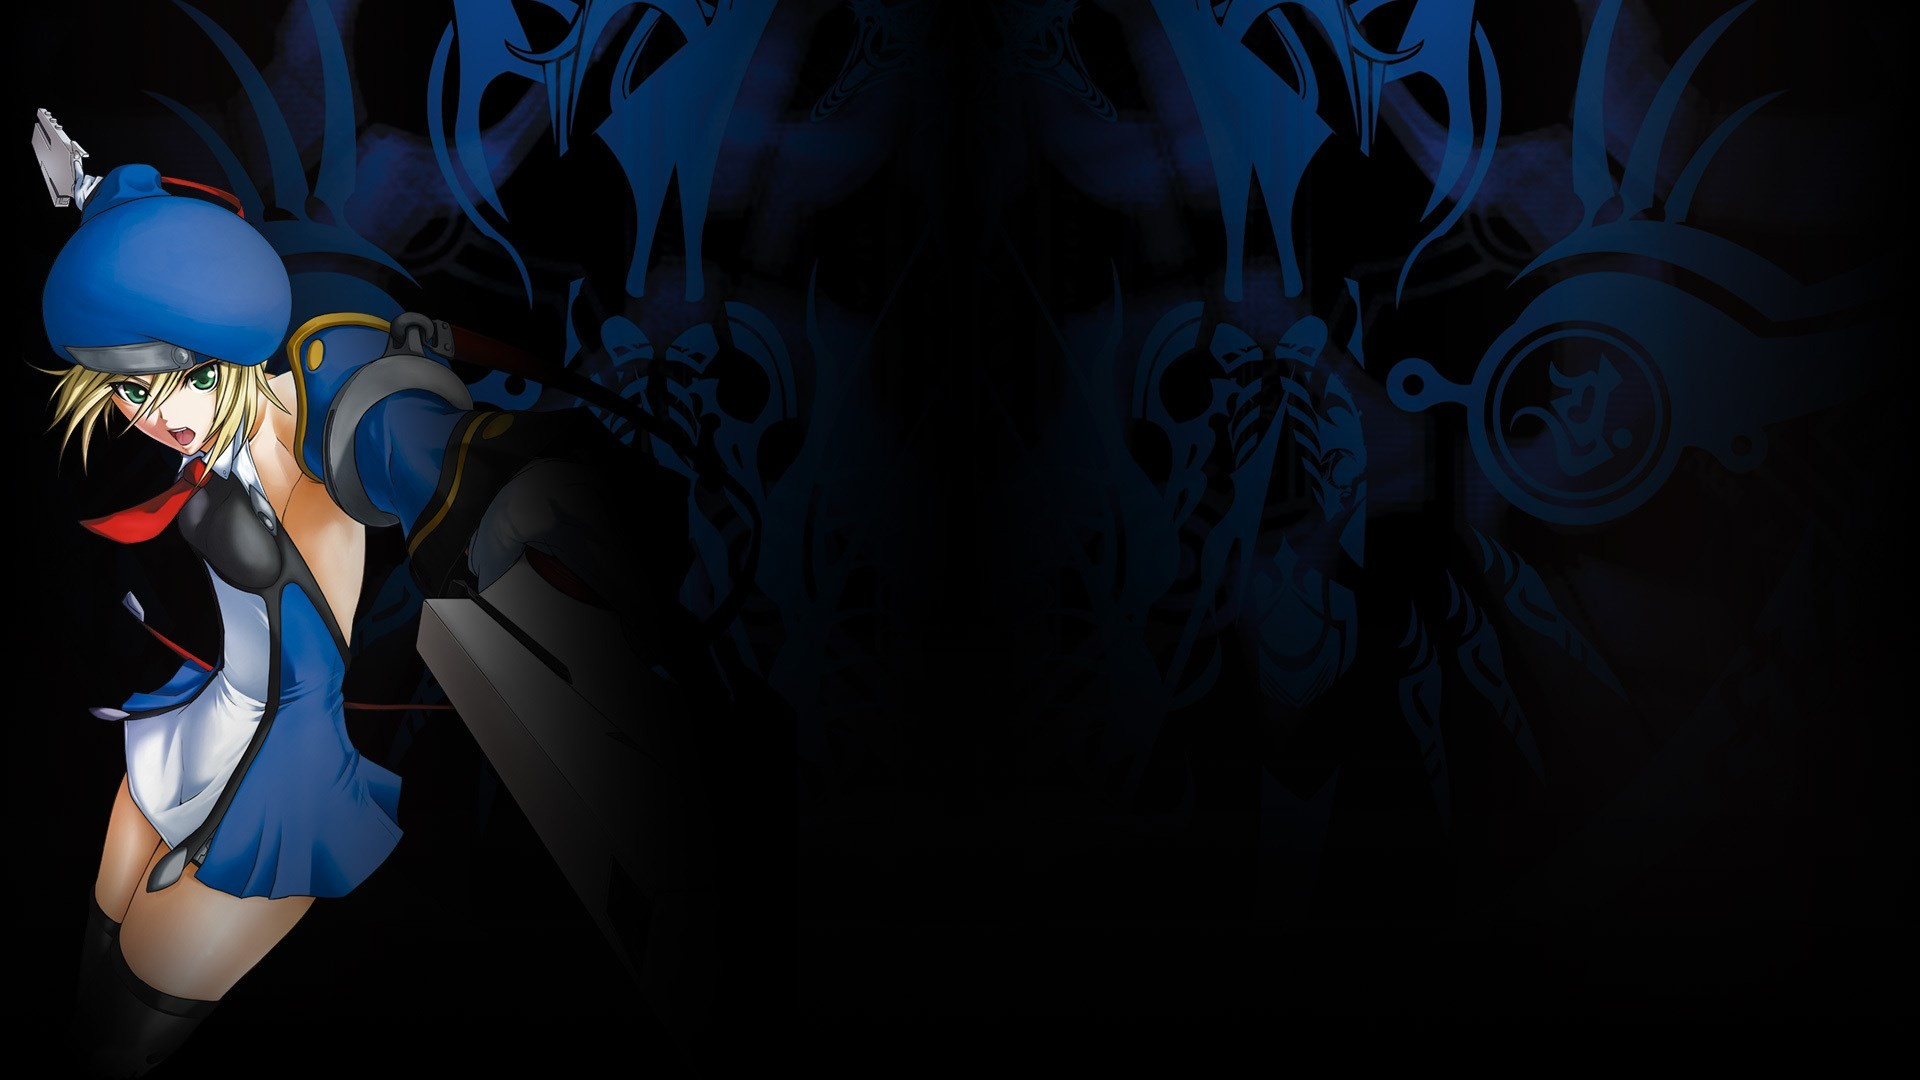 #1571271, blazblue calamity trigger category – Wallpapers for Desktop:  blazblue calamity trigger backround